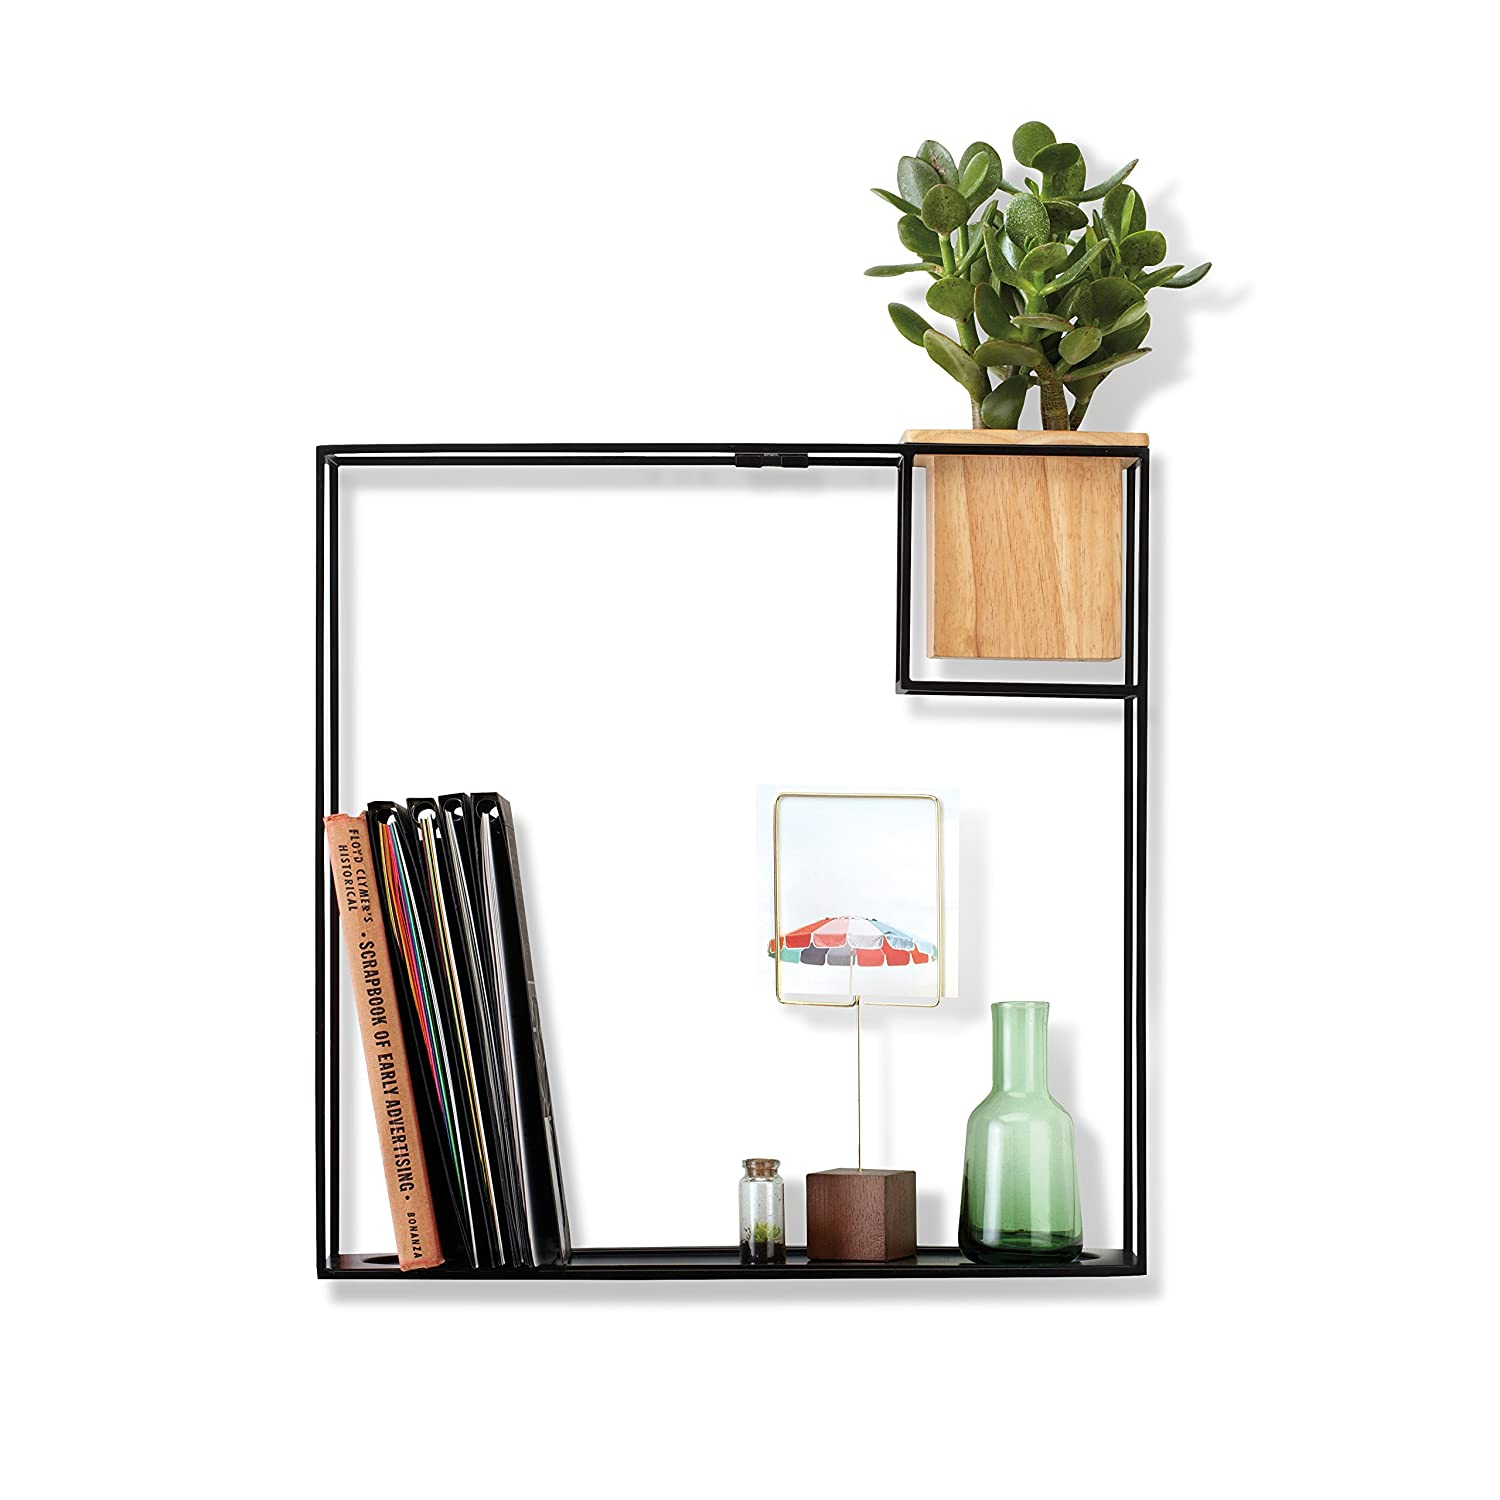 Amazon.com: Umbra Cubist Floating Shelf With Built In Succulent Planter U2013  Modern Wall Décor And Geometric Display Shelf For Books, Candles, Mementos,  ...